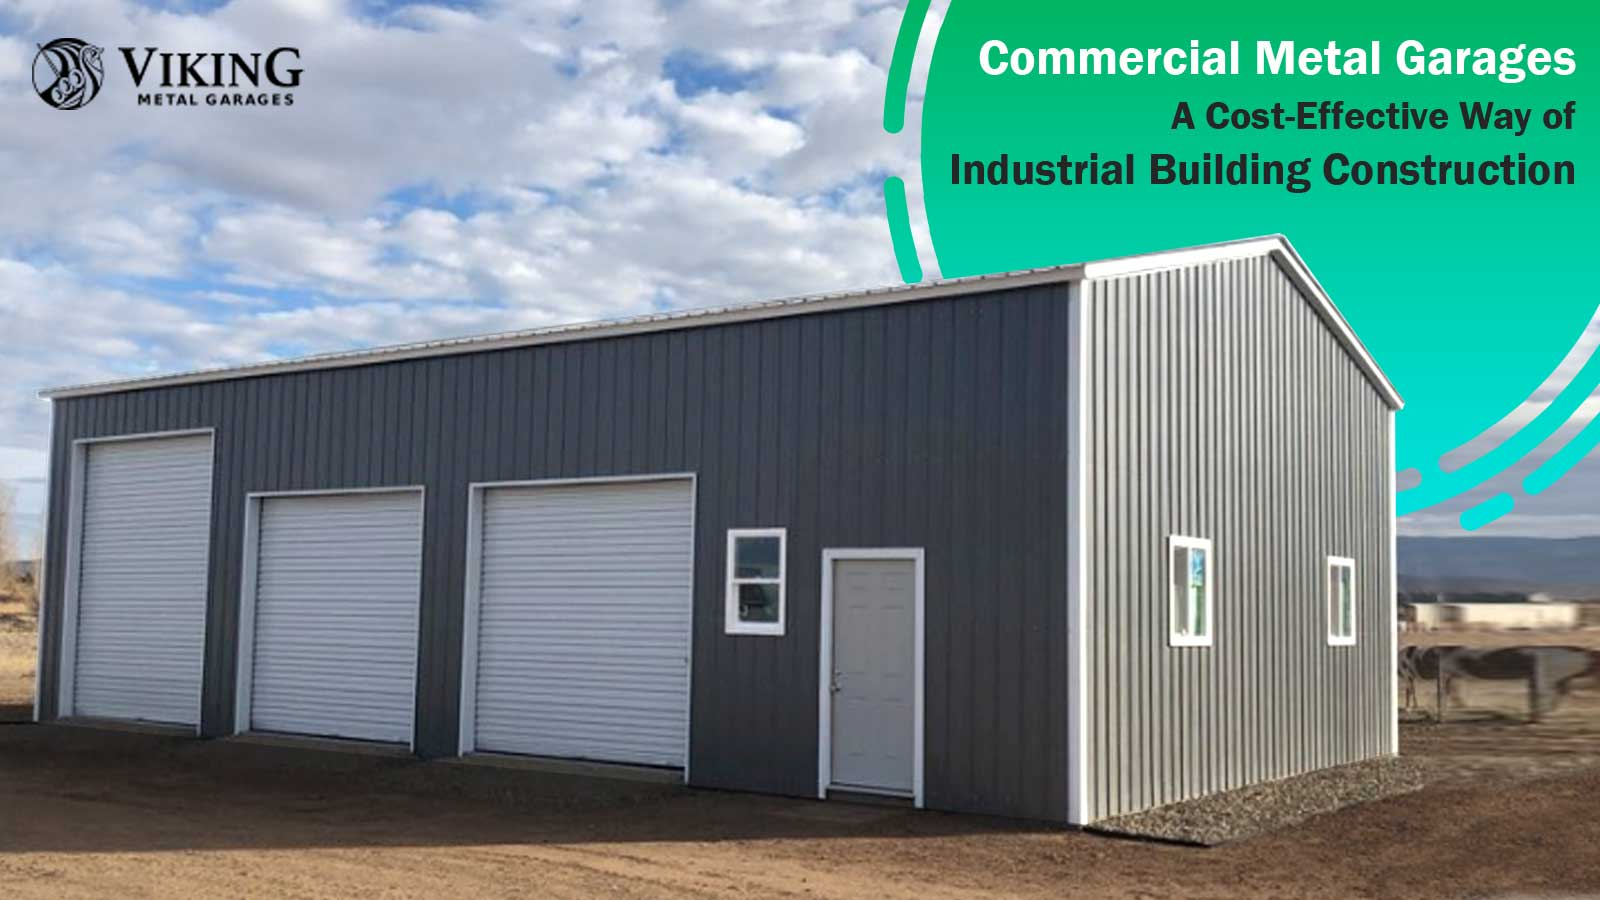 Commercial Metal Garages: A Cost-Effective Way of Industrial Building Construction